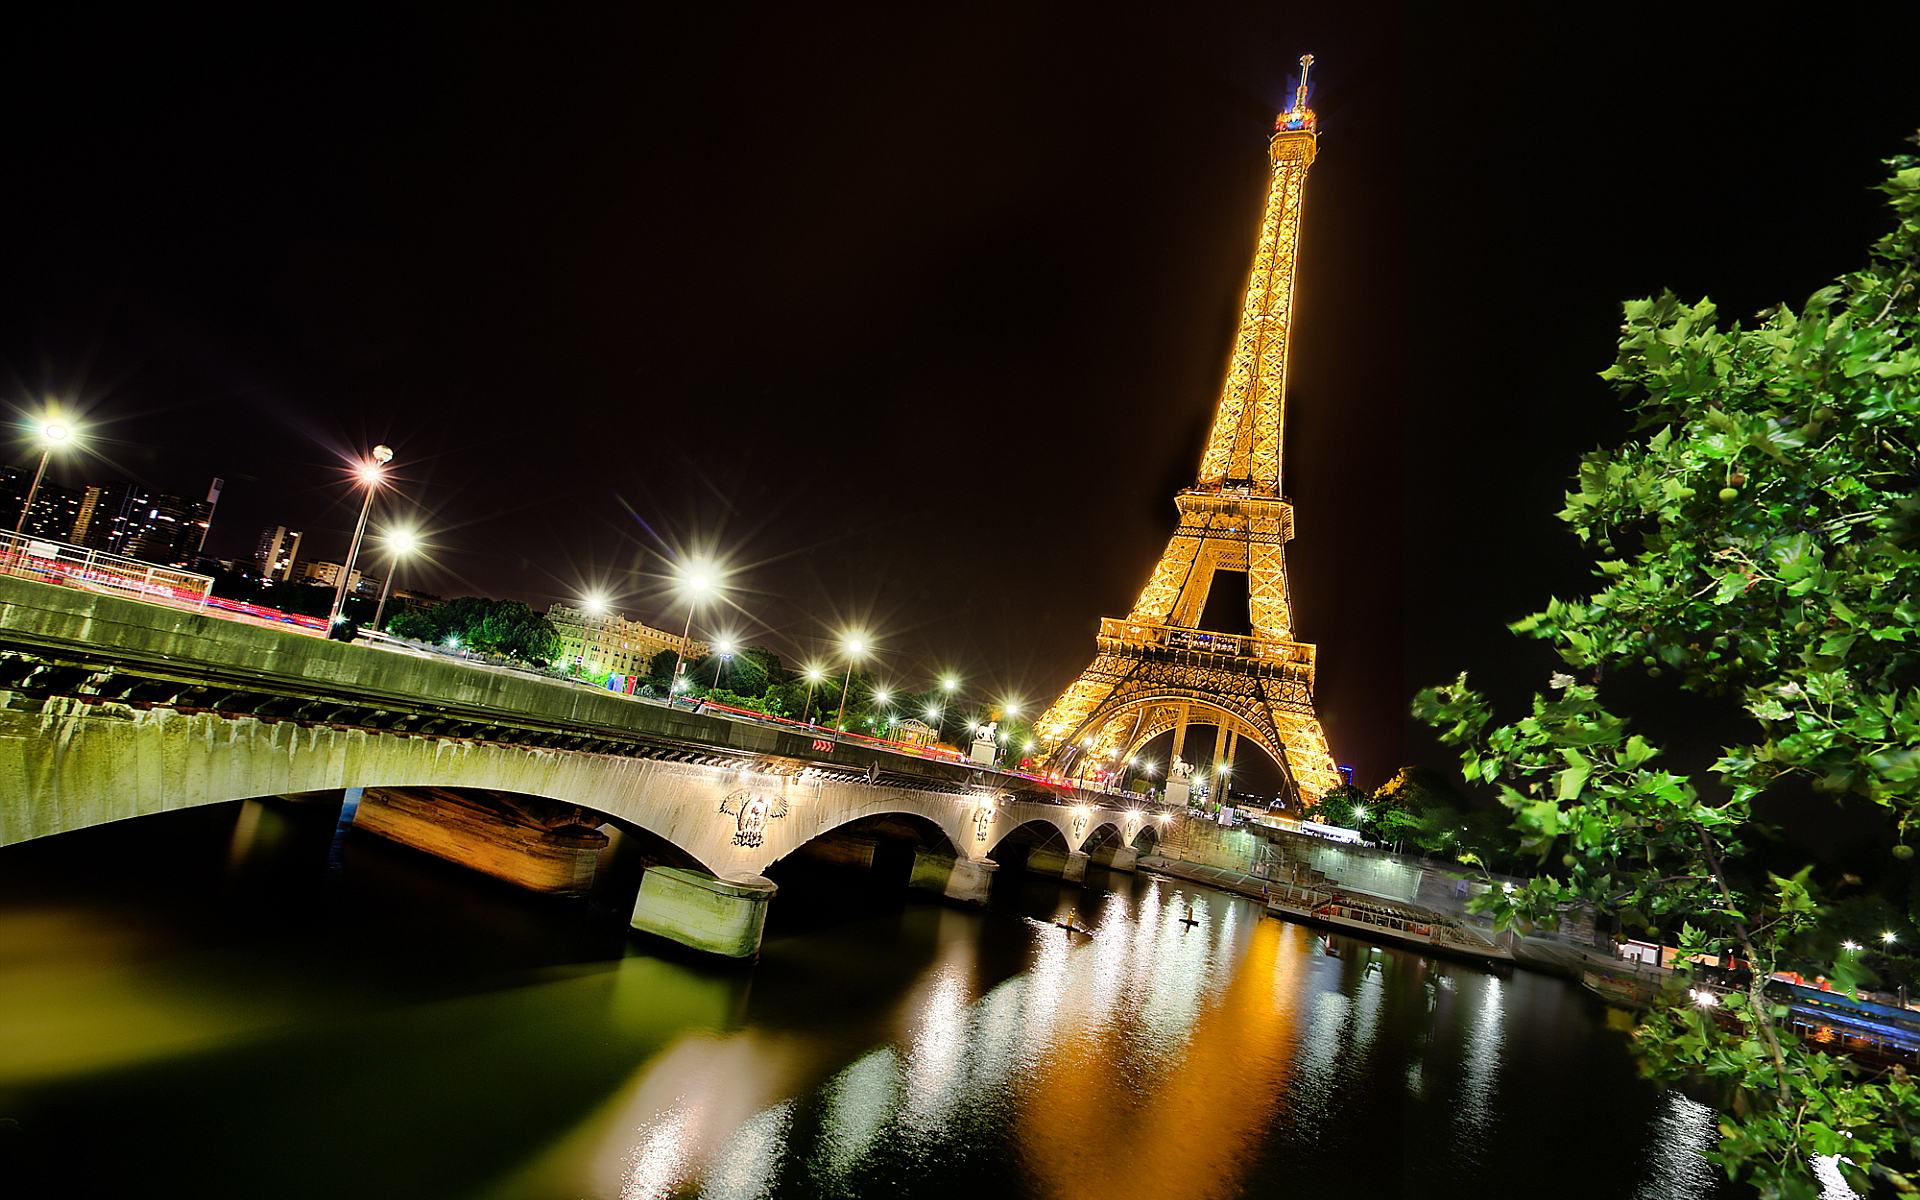 Eiffel Tower wallpapers at Night Wallpapers Backgrounds Images 1920x1200